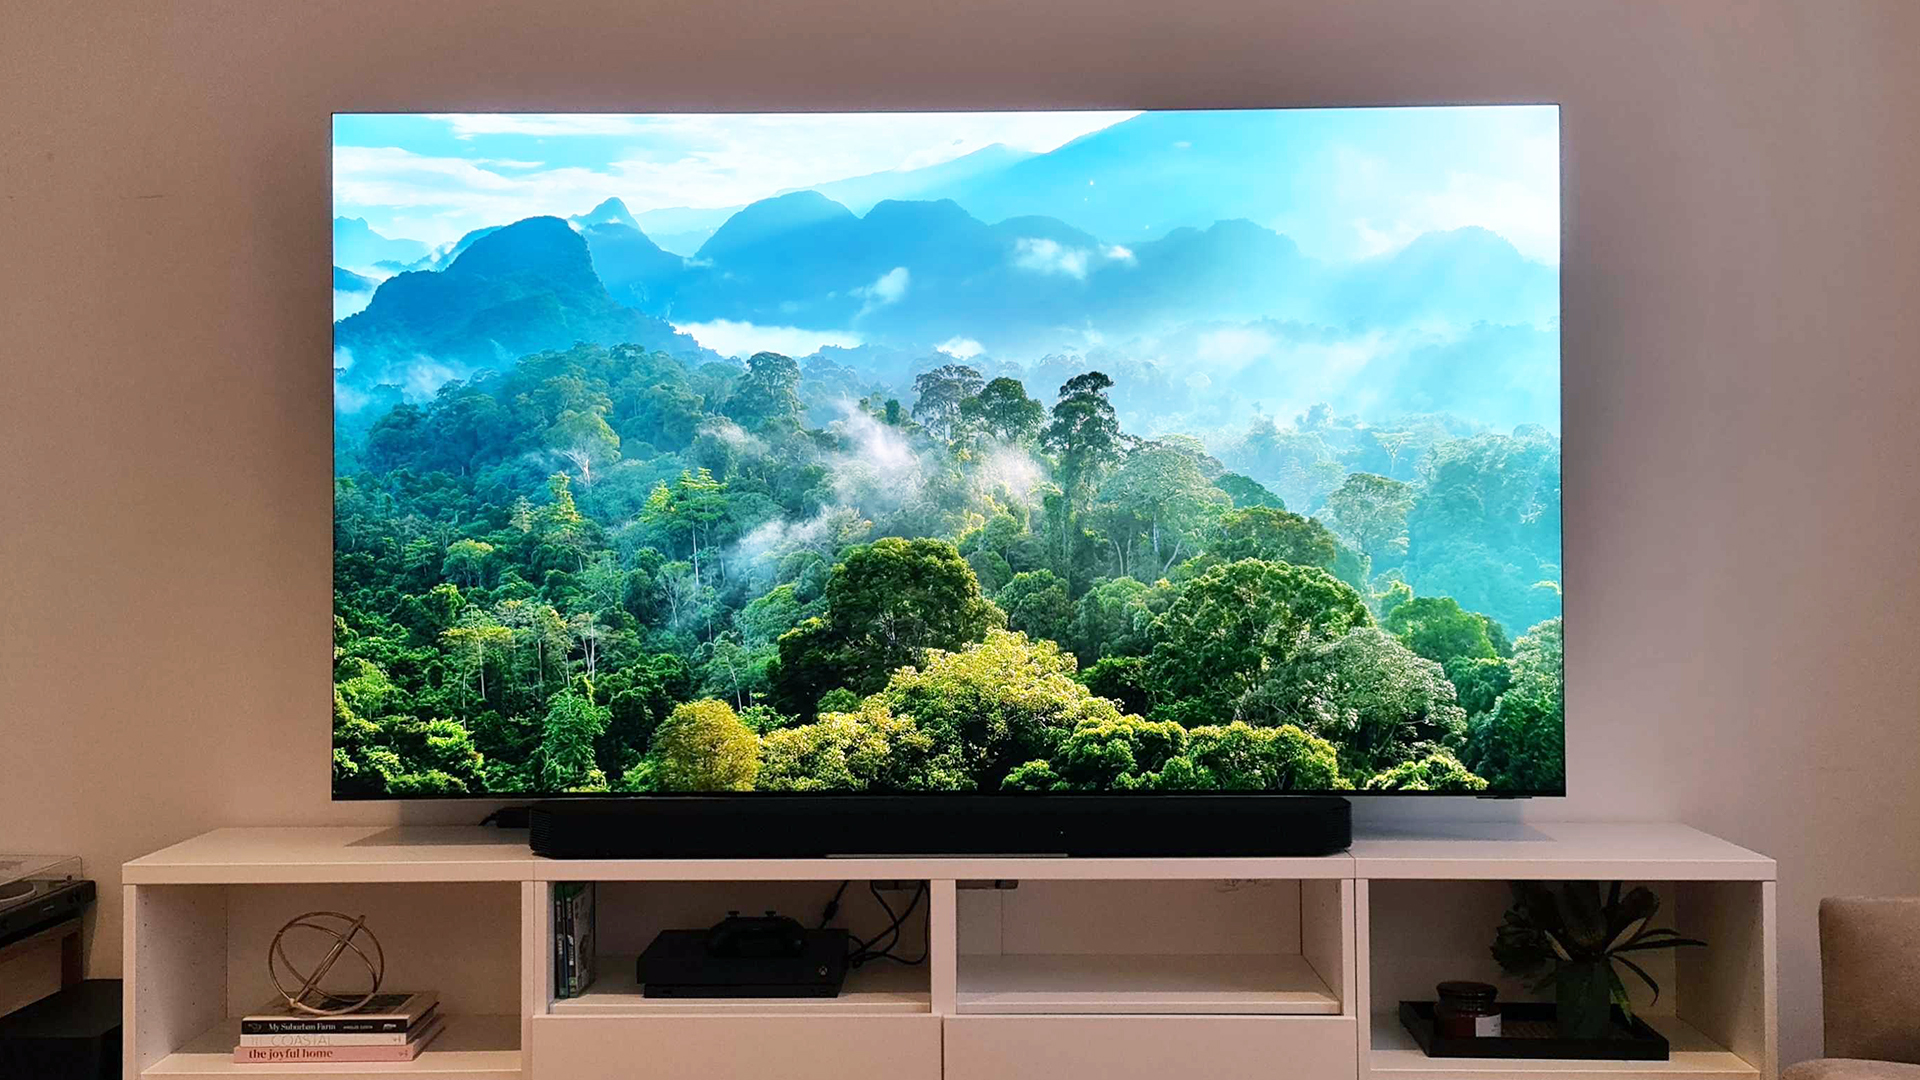 The Samsung QN900A Neo QLED 8K displayed in a lounge